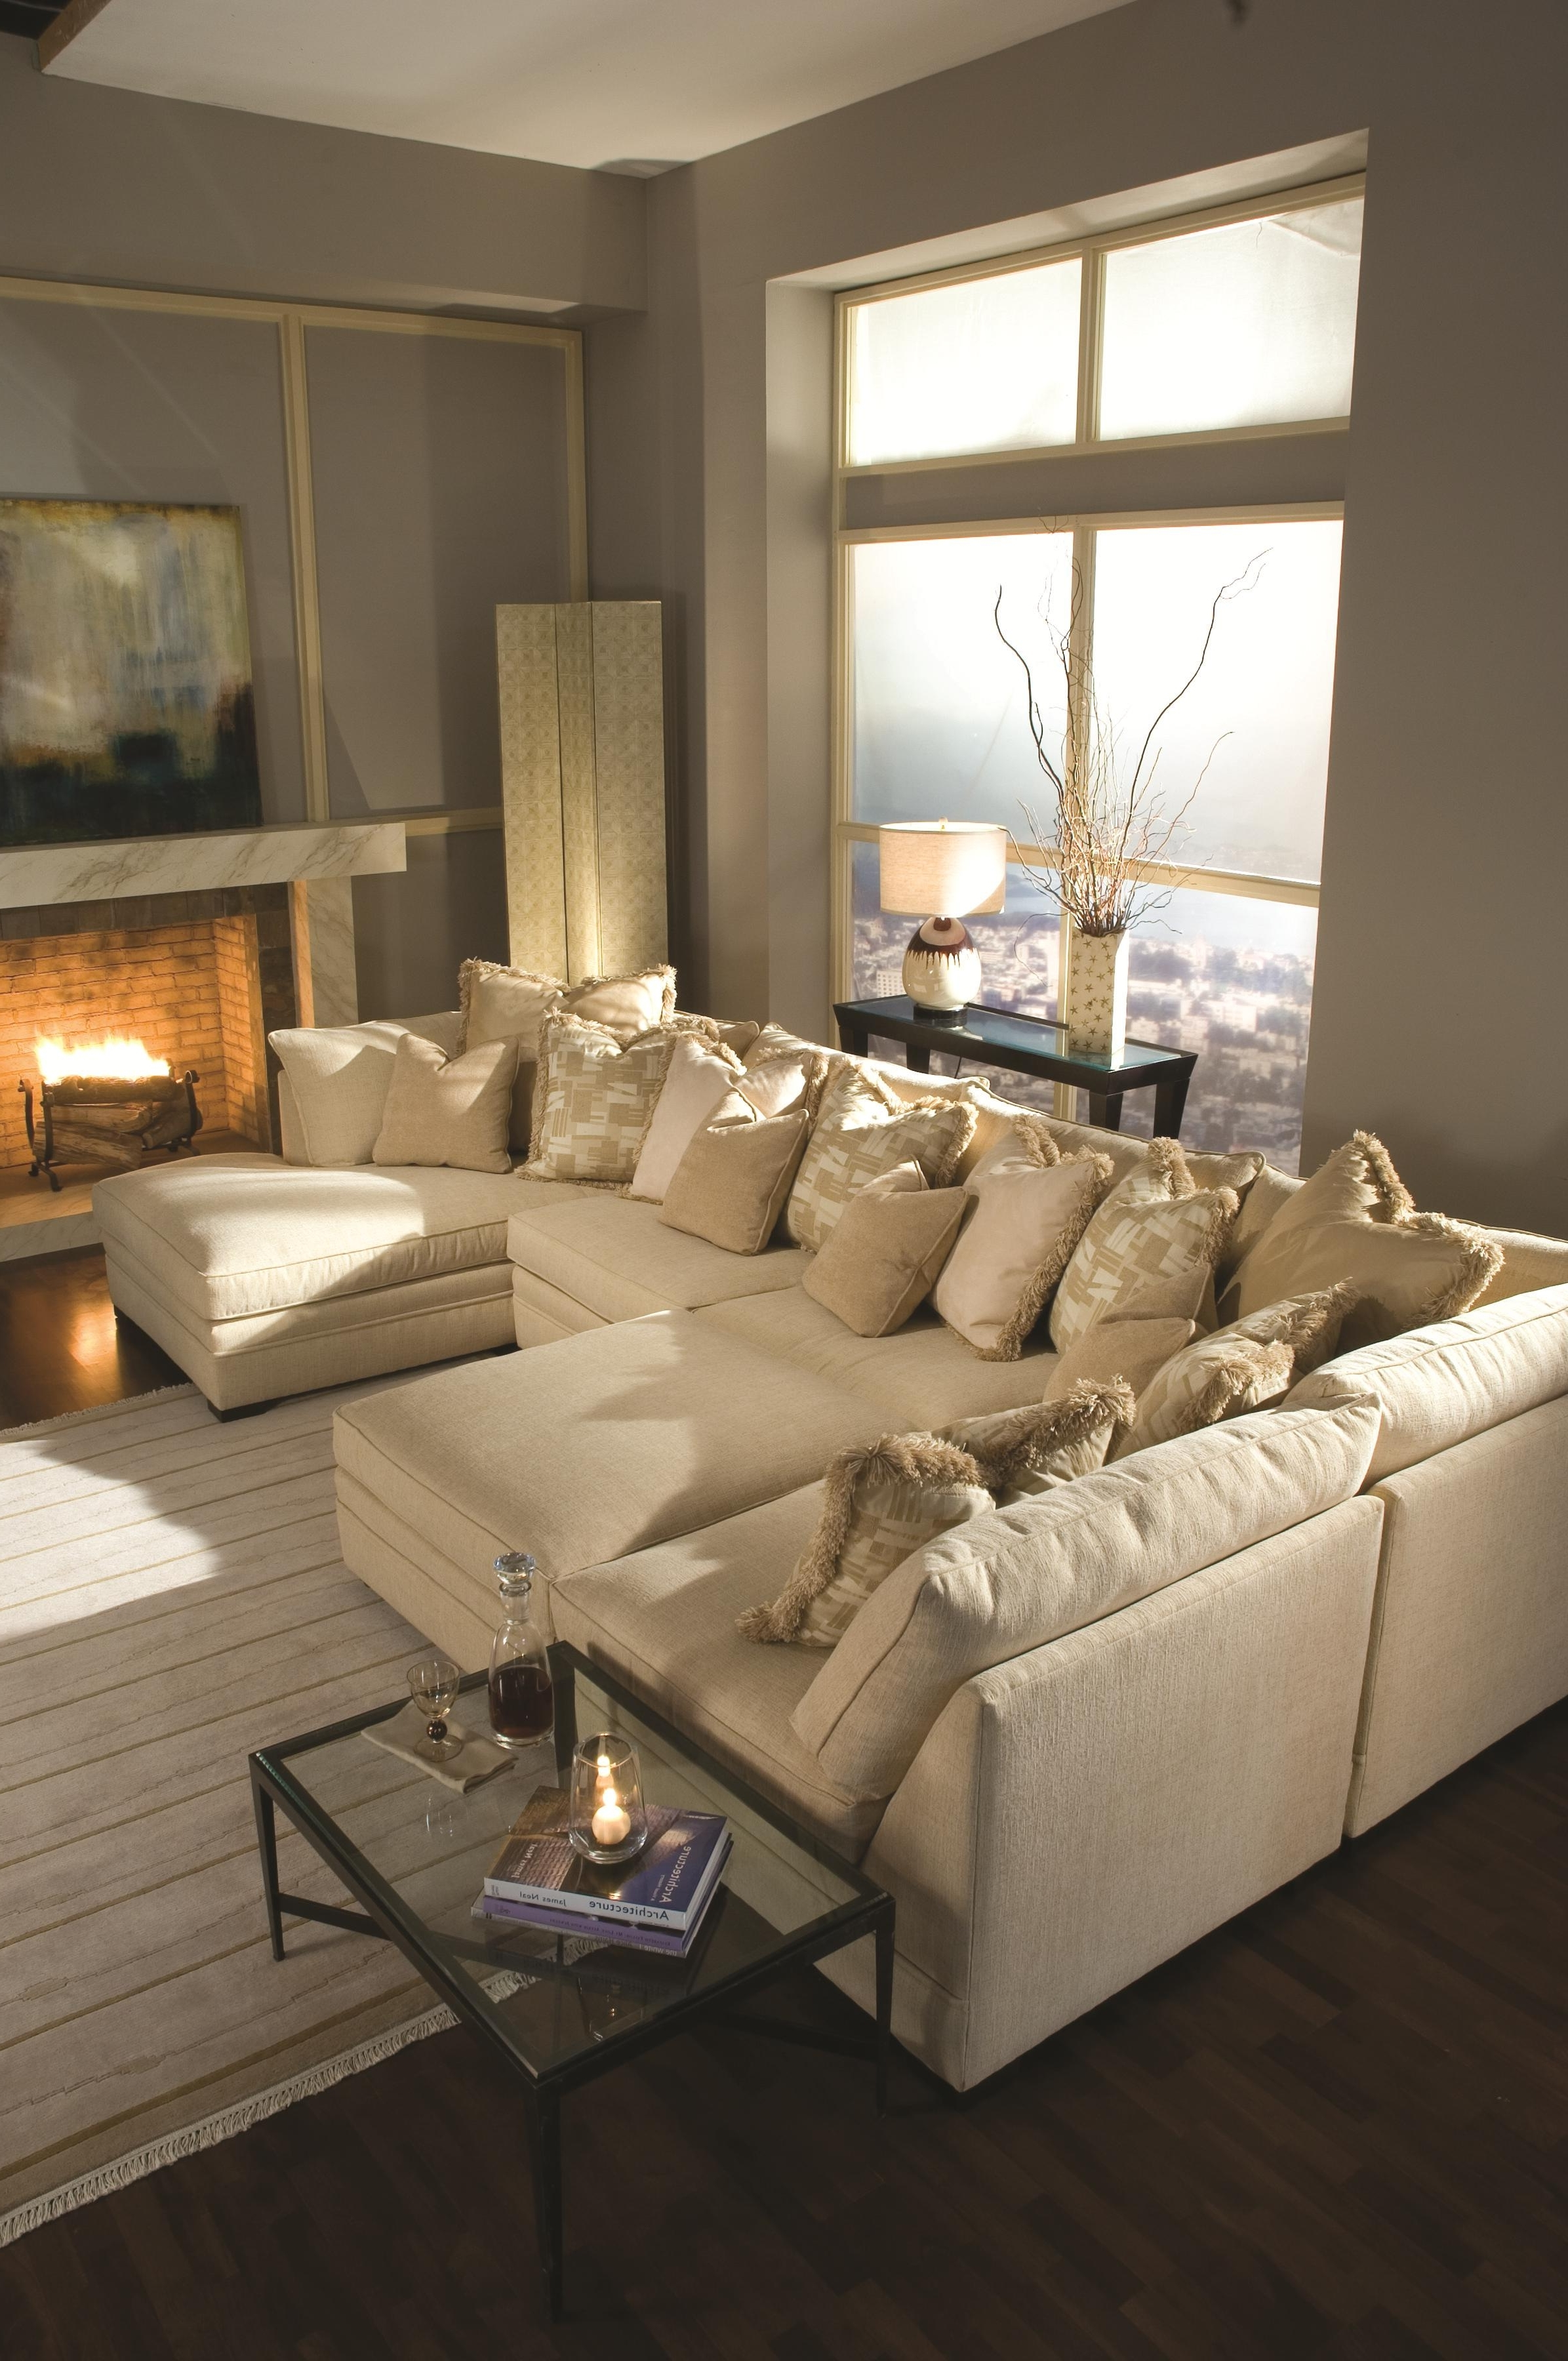 Preferred Geoffrey Alexander 7100 Contemporary U Shape Sectional Sofa With In Nashville Sectional Sofas (View 9 of 15)